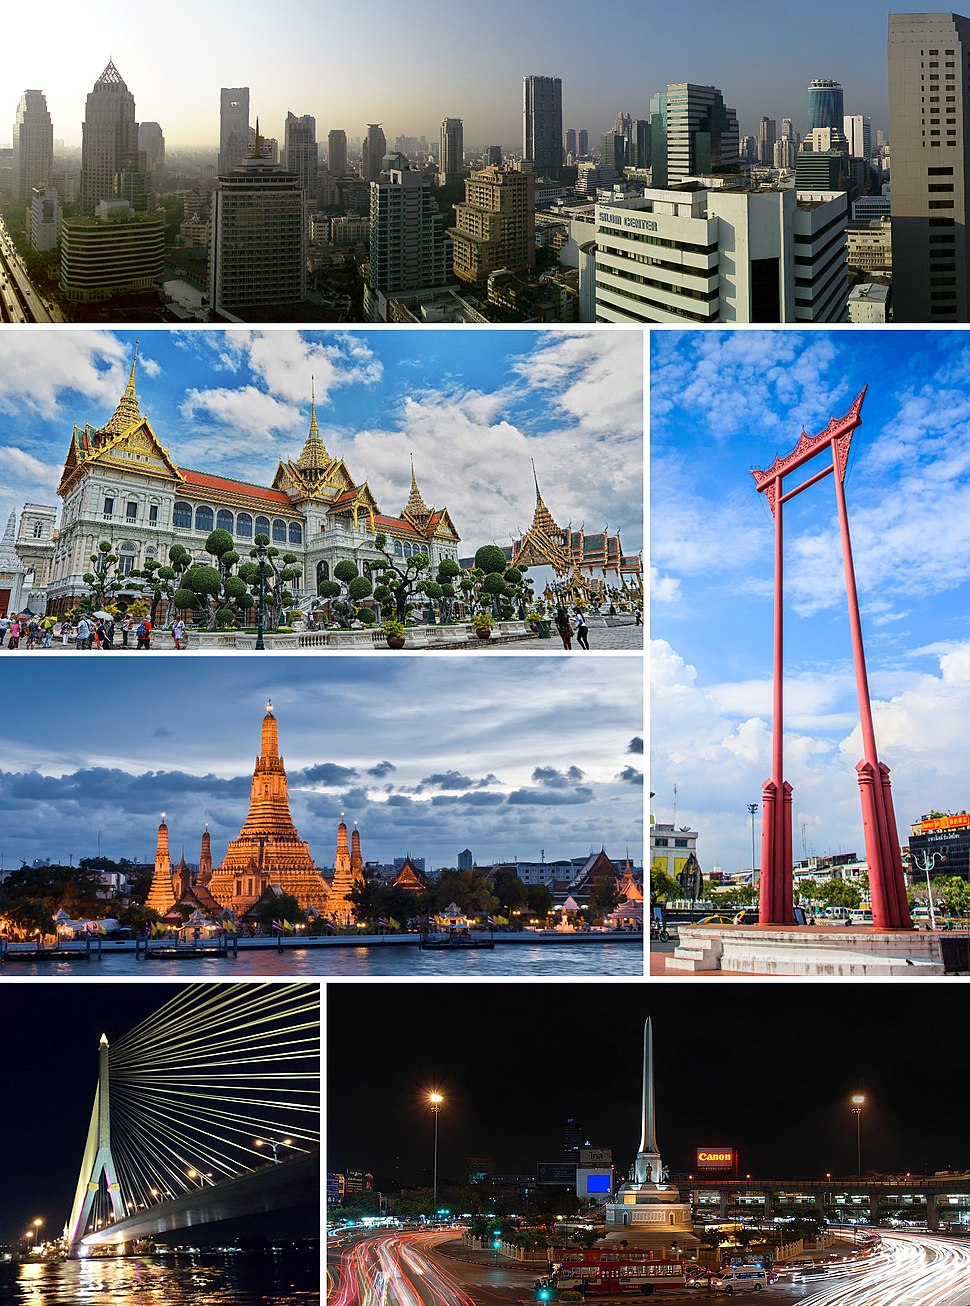 Clockwise from top: Si Lom–Sathon business district, the Giant Swing, Victory Monument, Rama VIII Bridge, Wat Arun, and the Grand Palace